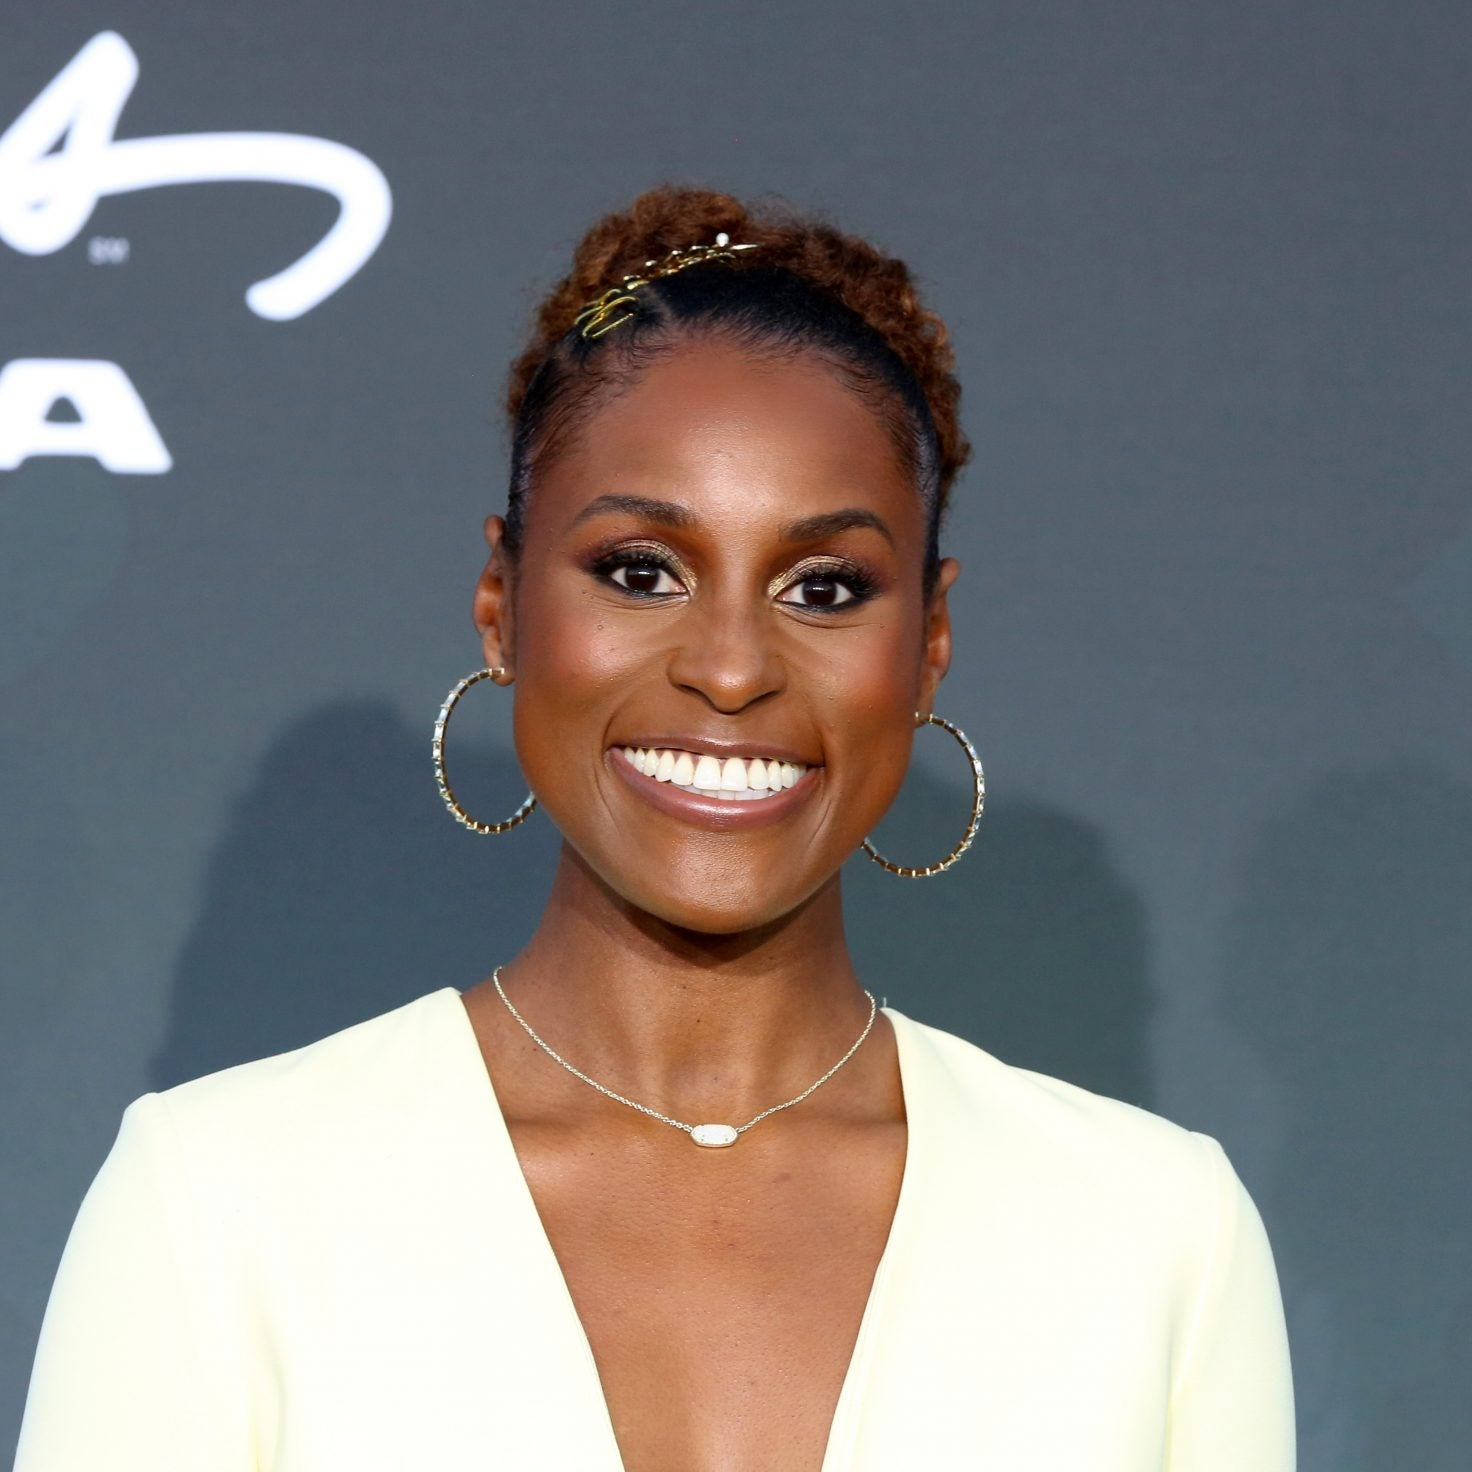 Issa Rae Highlighted The Lack Of Women In This Year's Oscar Nominees For Best Director: 'Congrats To Those Men'